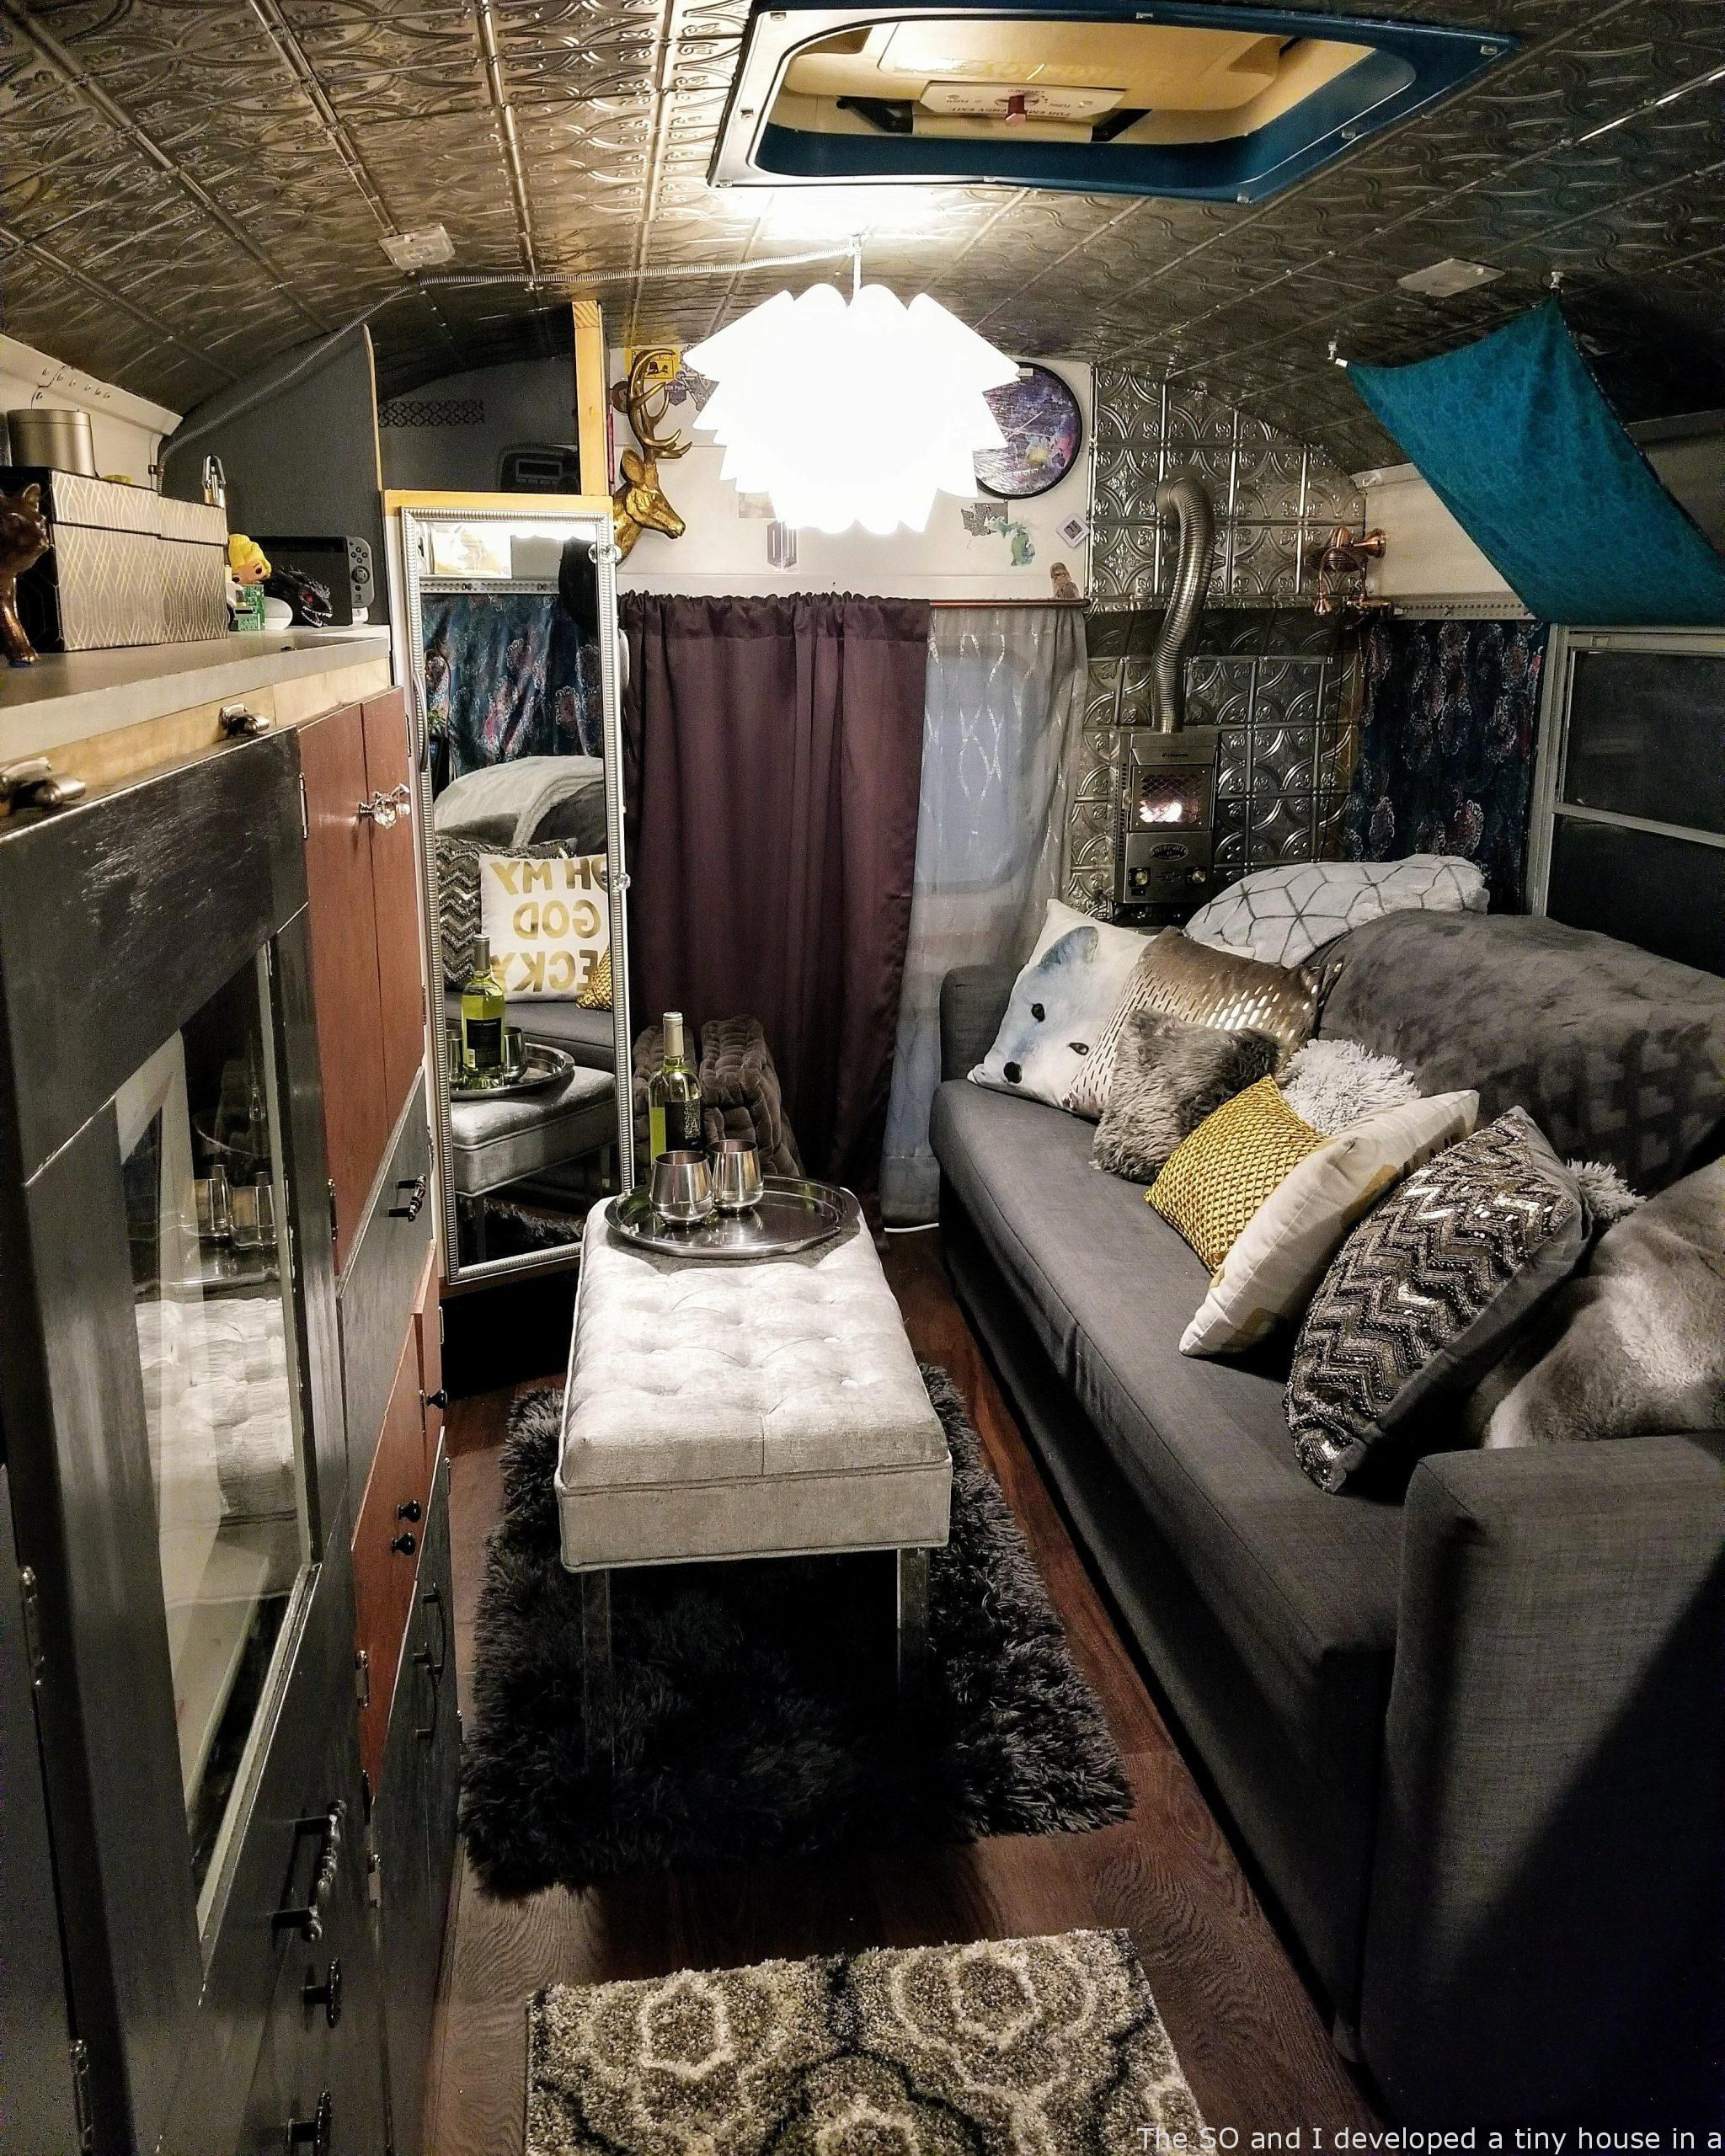 Cozyplaces The So And I Developed A Tiny Household In A University Bus Here S The Residing Space In 2020 With Images Small Room Decor Building A Tiny House Apartment Room